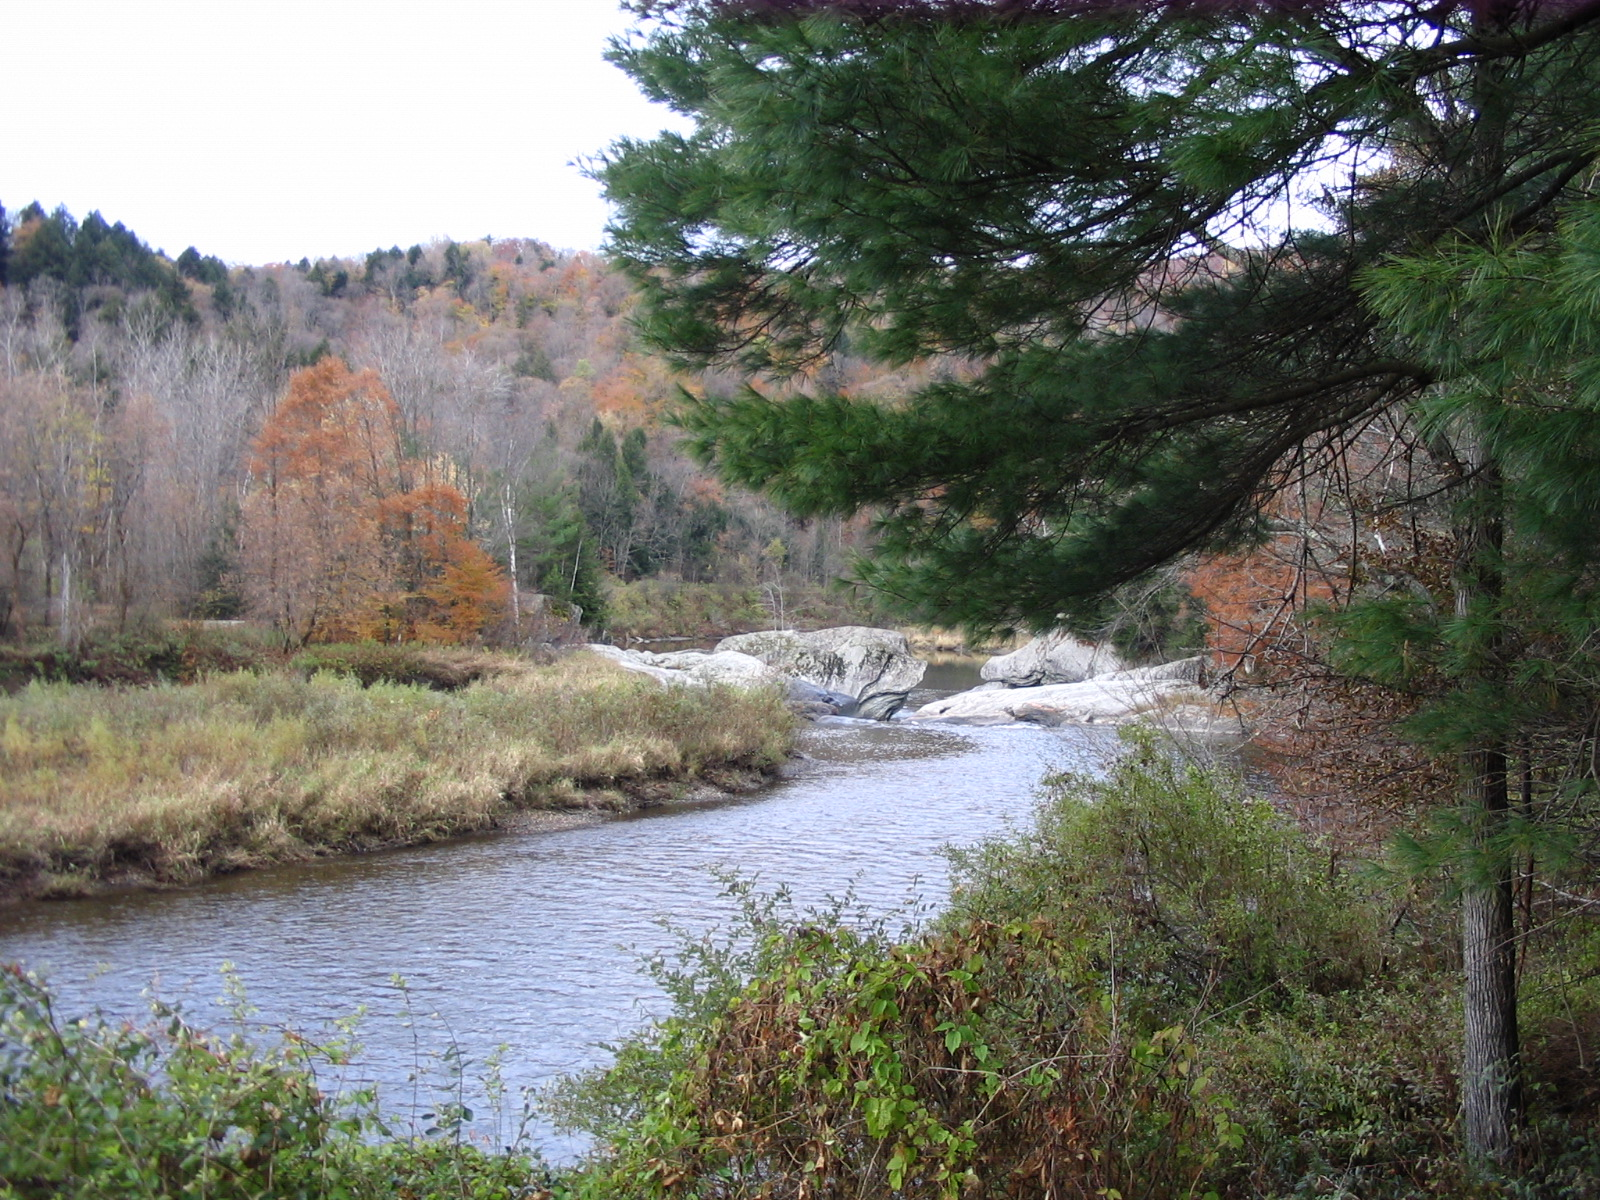 Photograph of the Lamoille River at Johnson, VT (JONV1) looking downstream